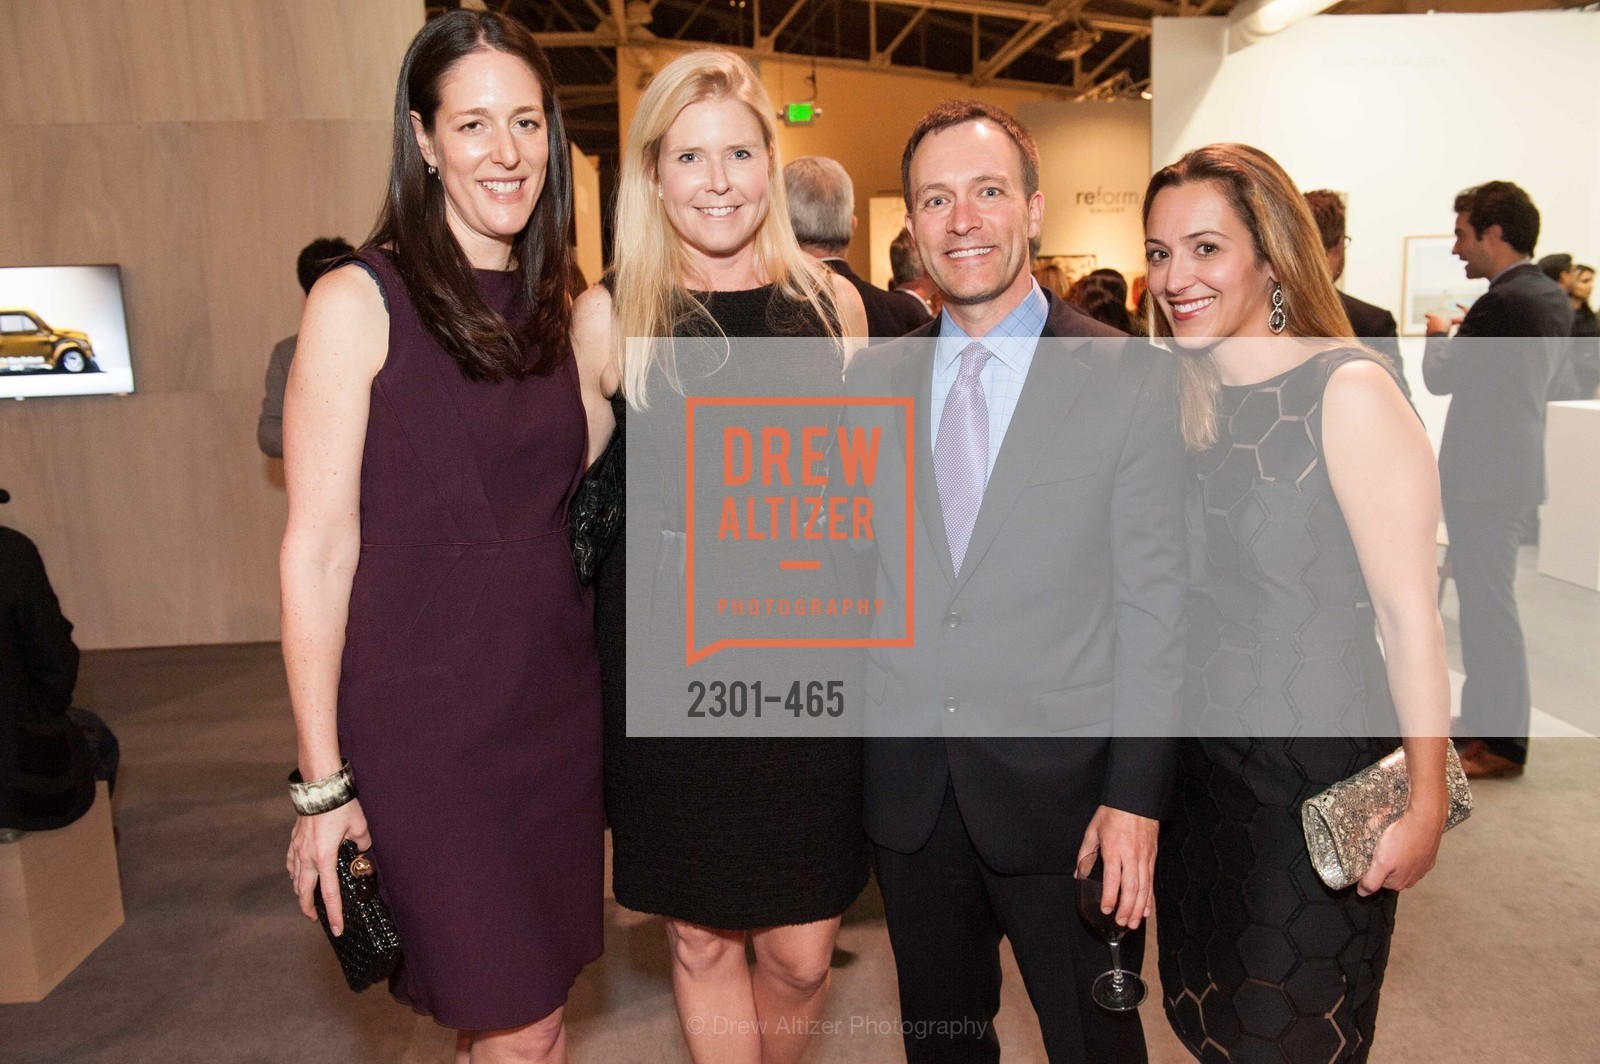 Lisa Targer, Virginia Tusher, Scott Crabill, Angela Crabill, FOG Design + Art Preview Gala, US. US, January 16th, 2014,Drew Altizer, Drew Altizer Photography, full-service agency, private events, San Francisco photographer, photographer california